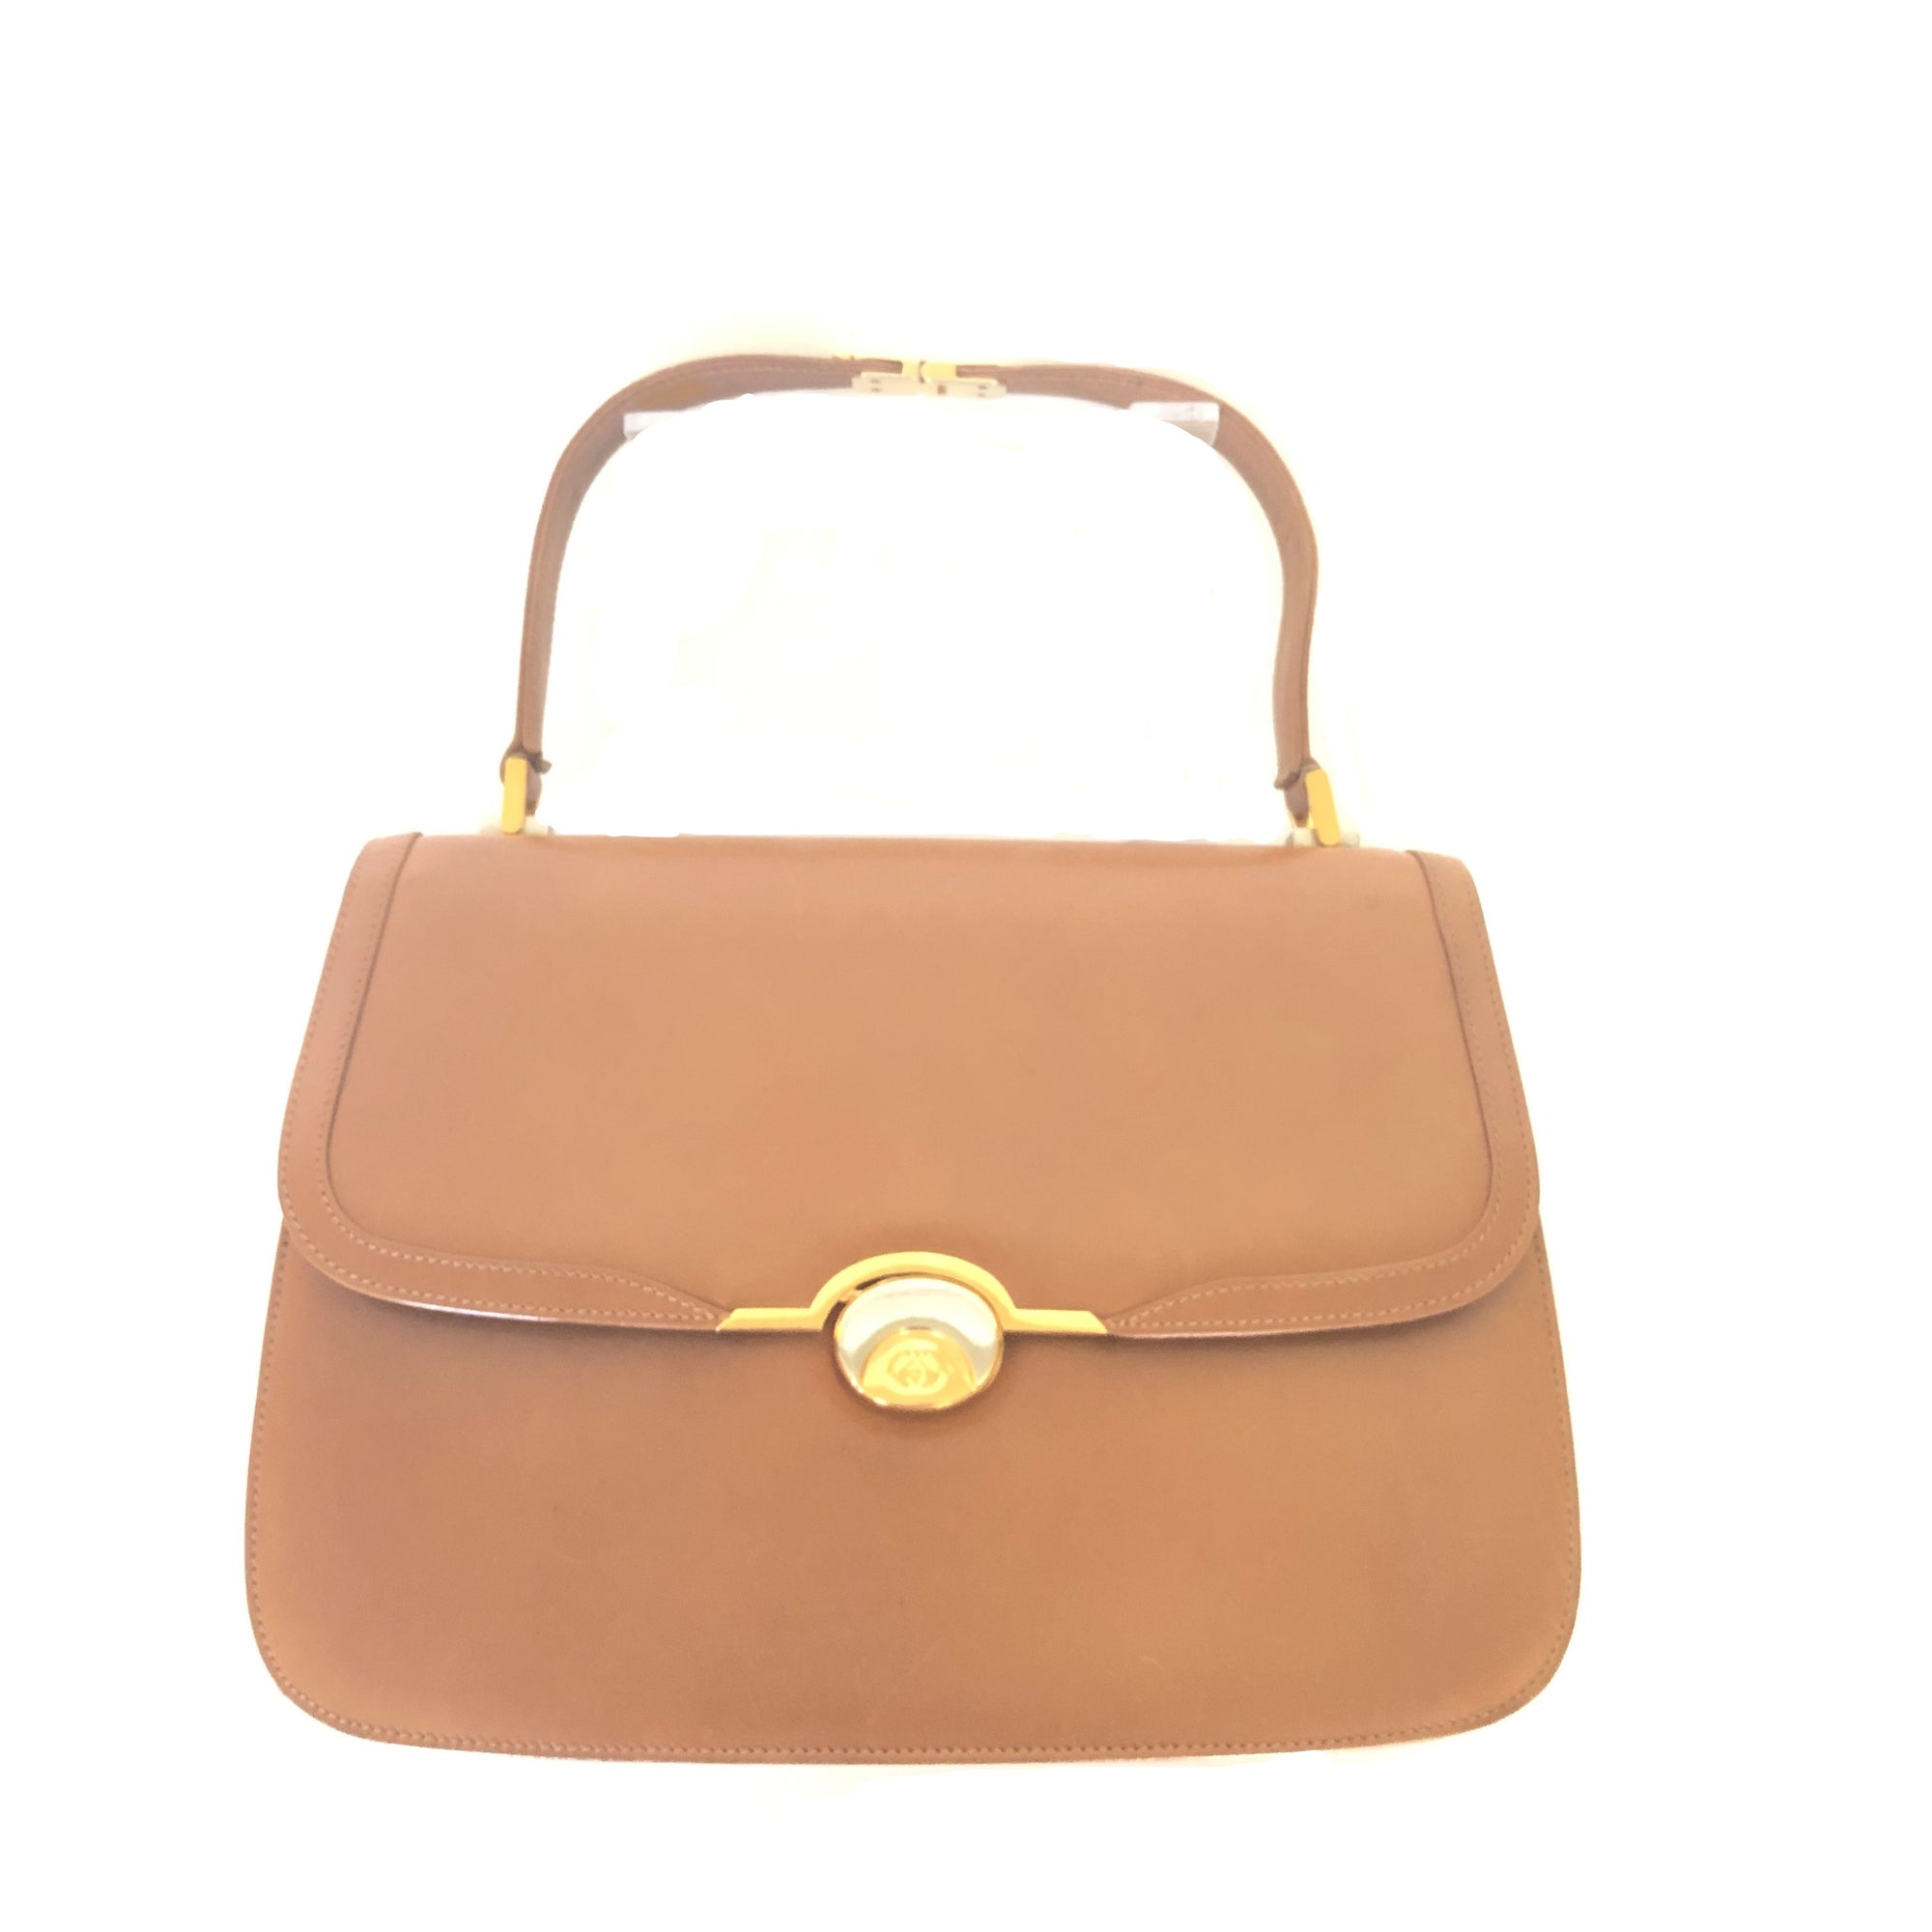 Gucci Vintage Tan Smooth Leather Top Handle Bag